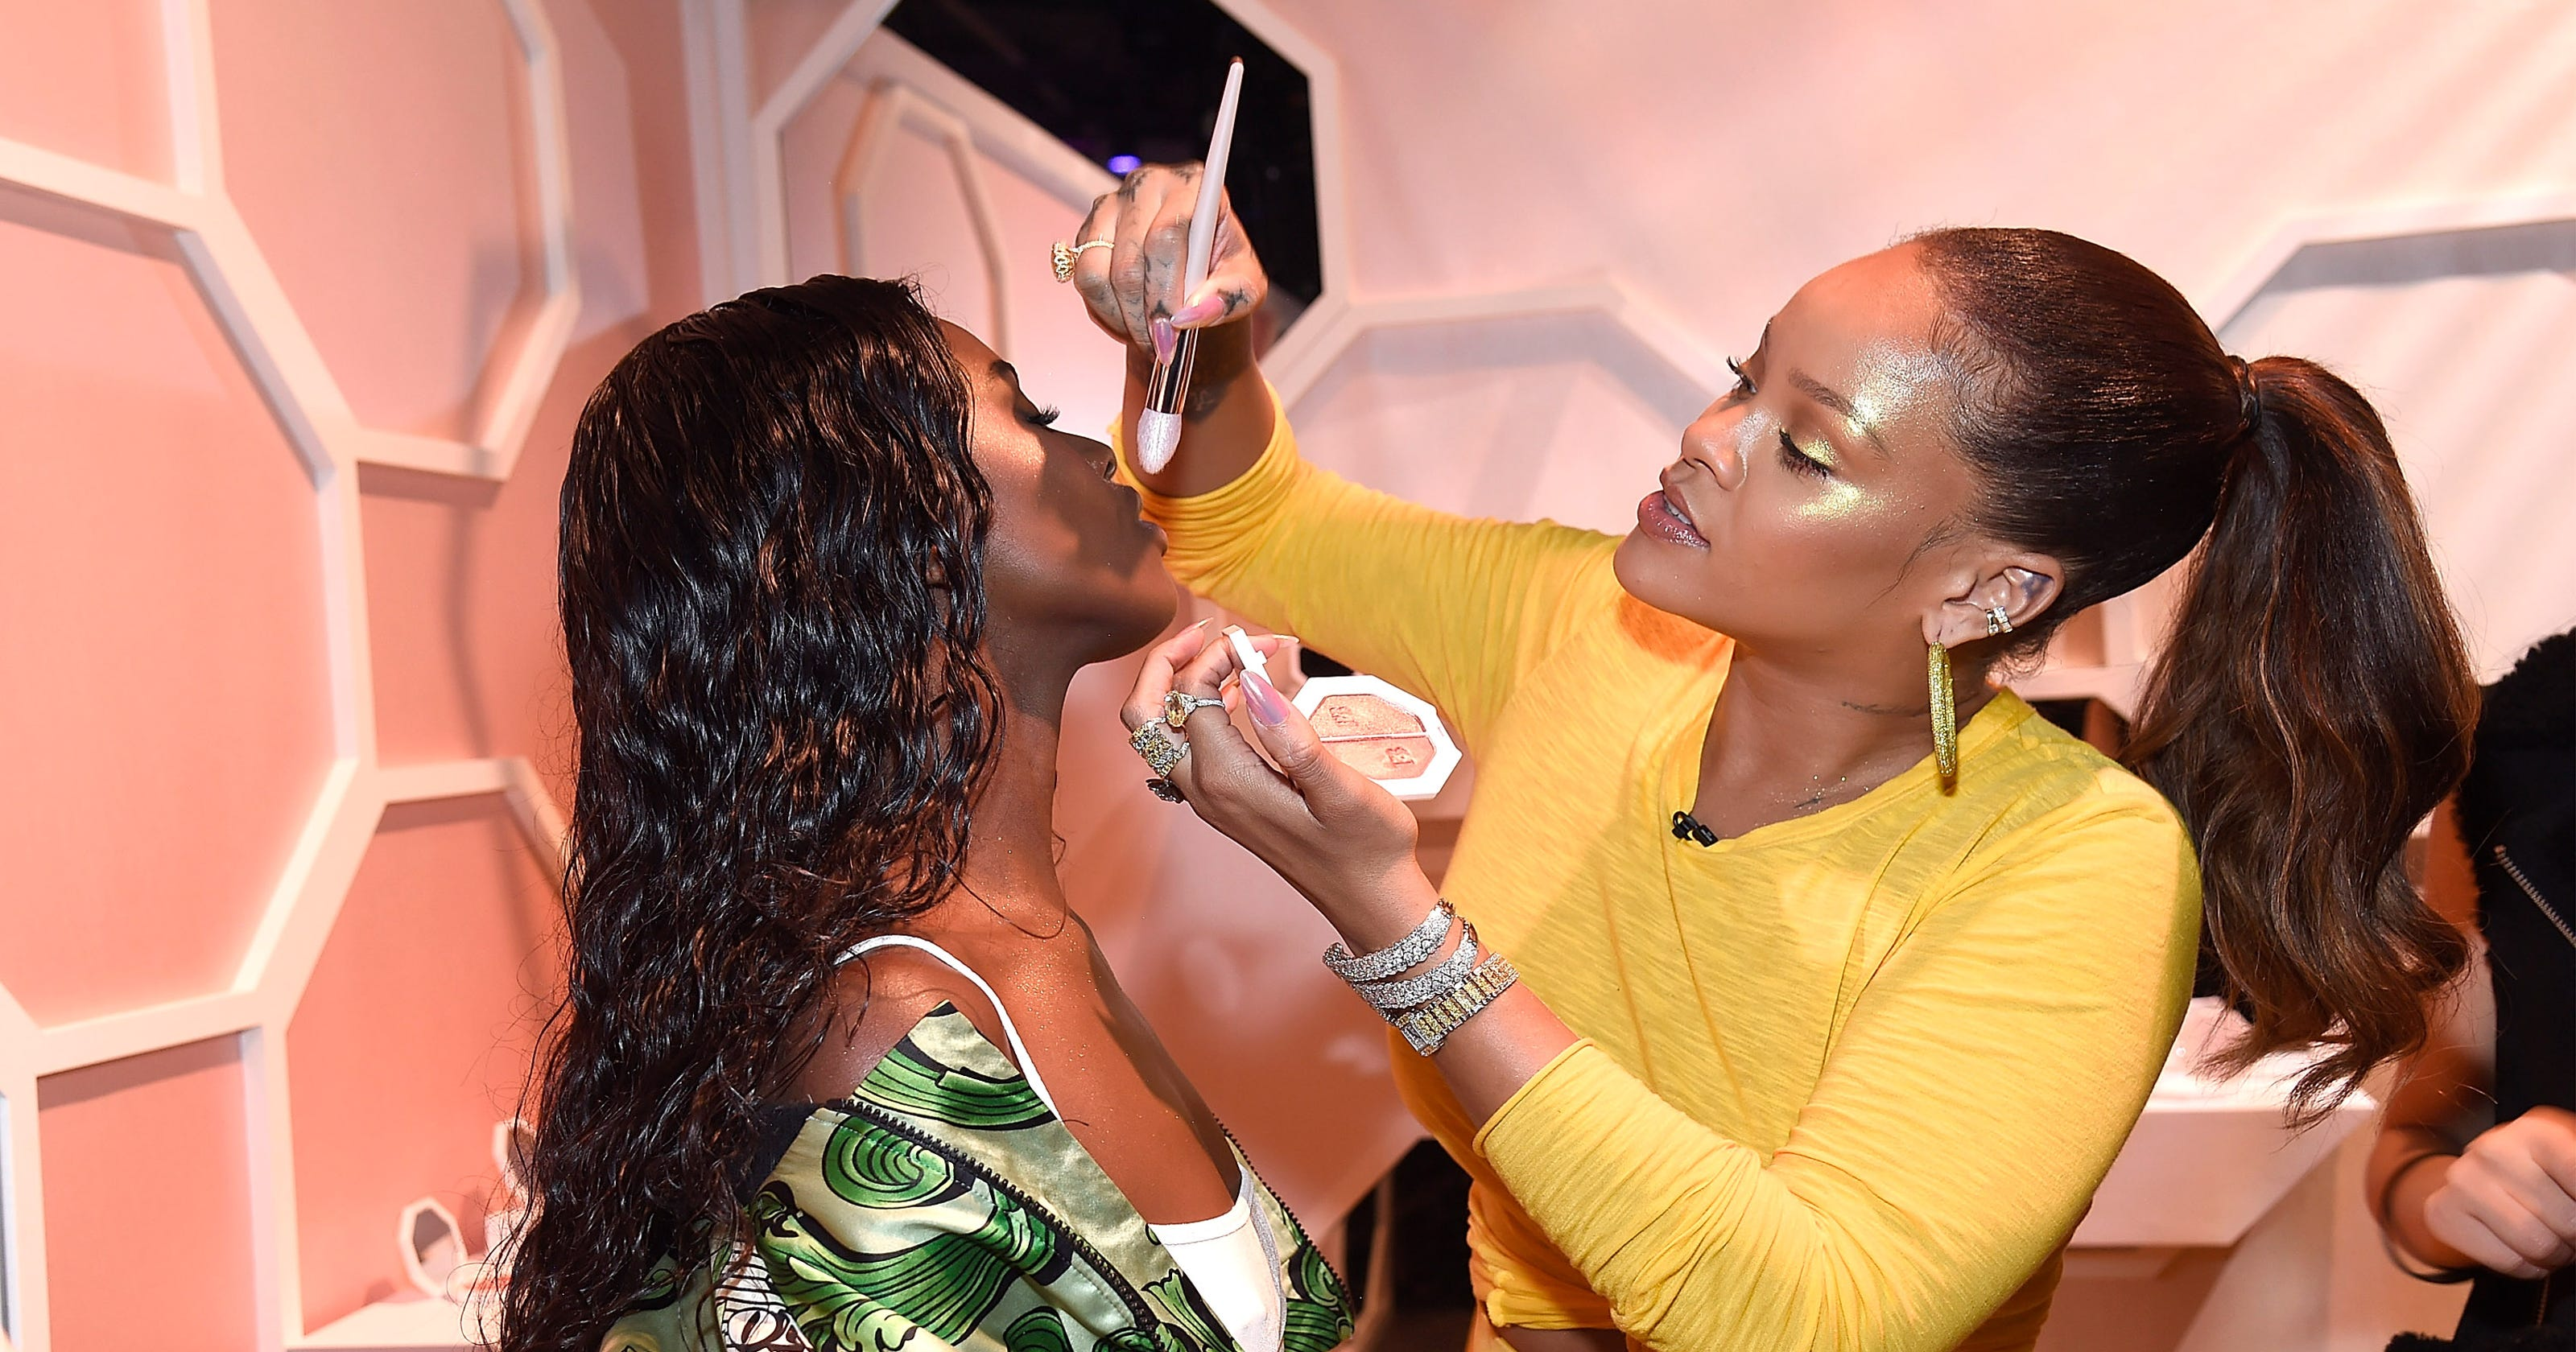 76859e9413a2c An honest review of Fenty Beauty  Does Rihanna s makeup live up to the  inclusivity hype